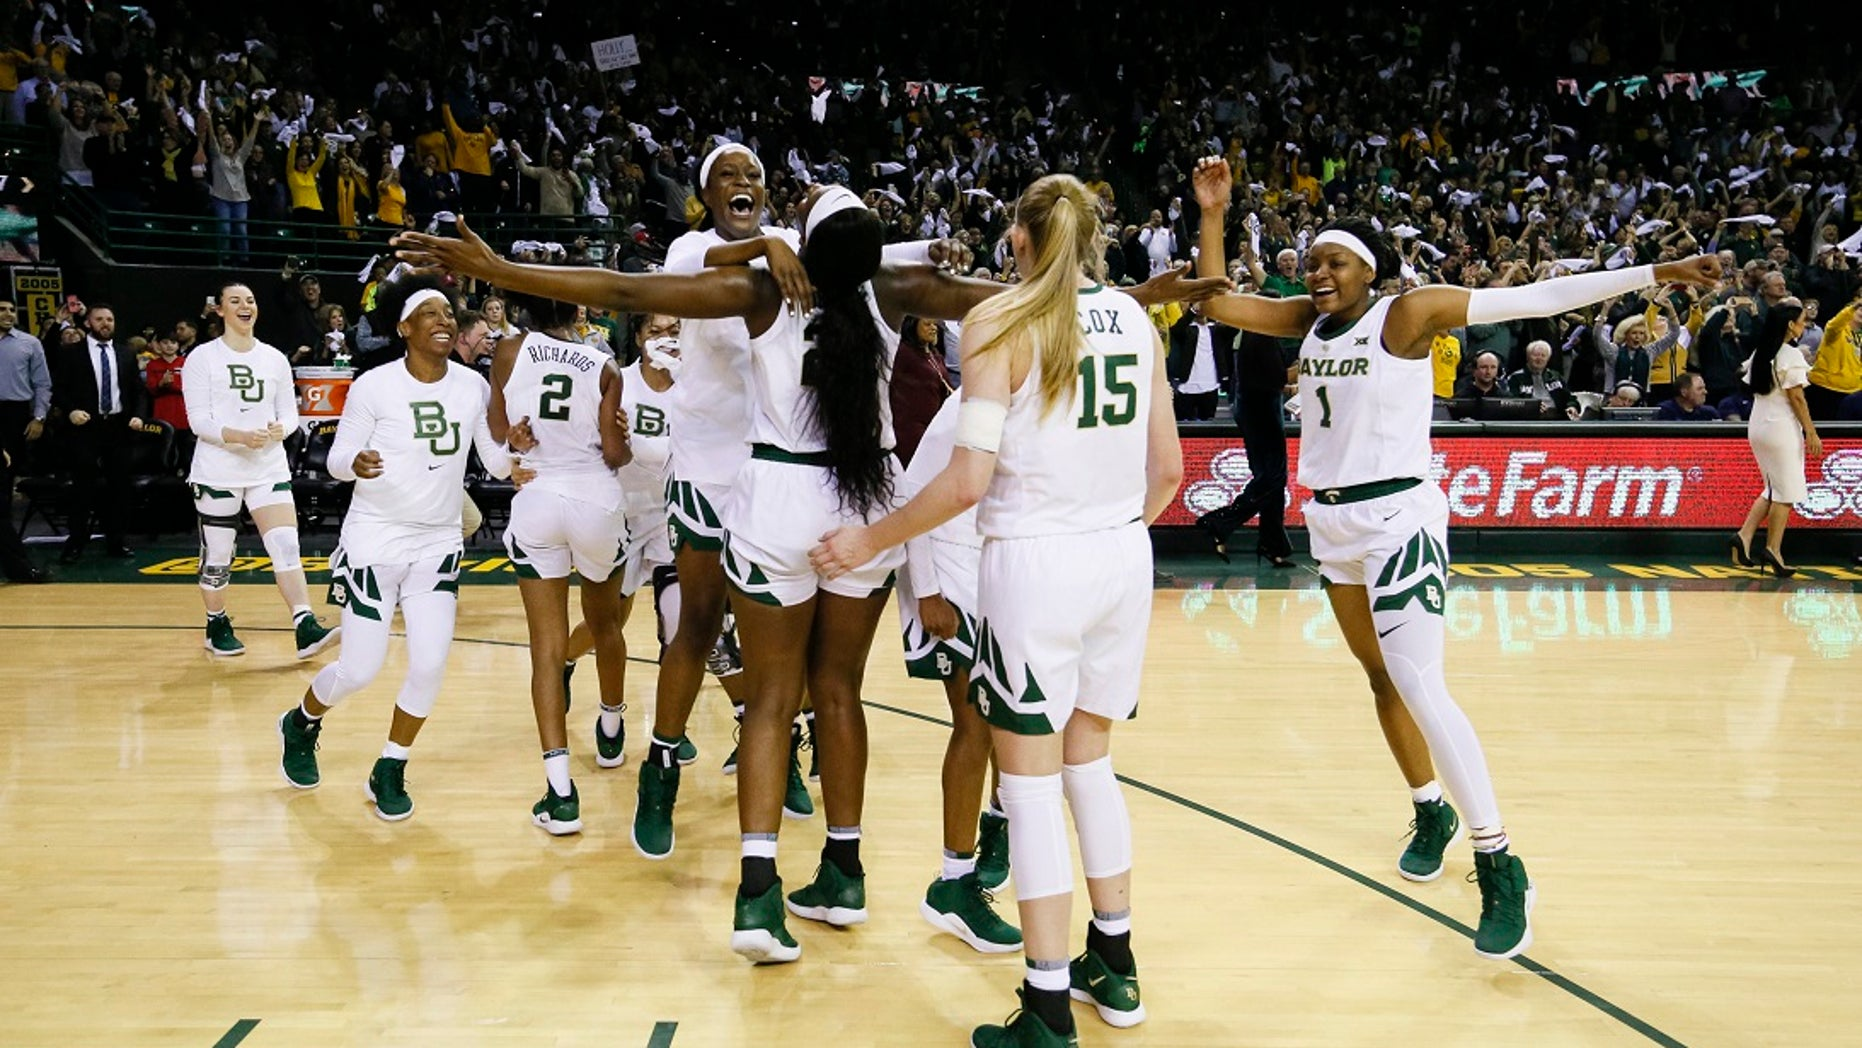 Baylor players celebrate after a 68-57 victory over No. 1 Connecticut in an NCAA college basketball game Thursday, Jan. 3, 2019, in Waco, Texas. (AP Photo/Ray Carlin)